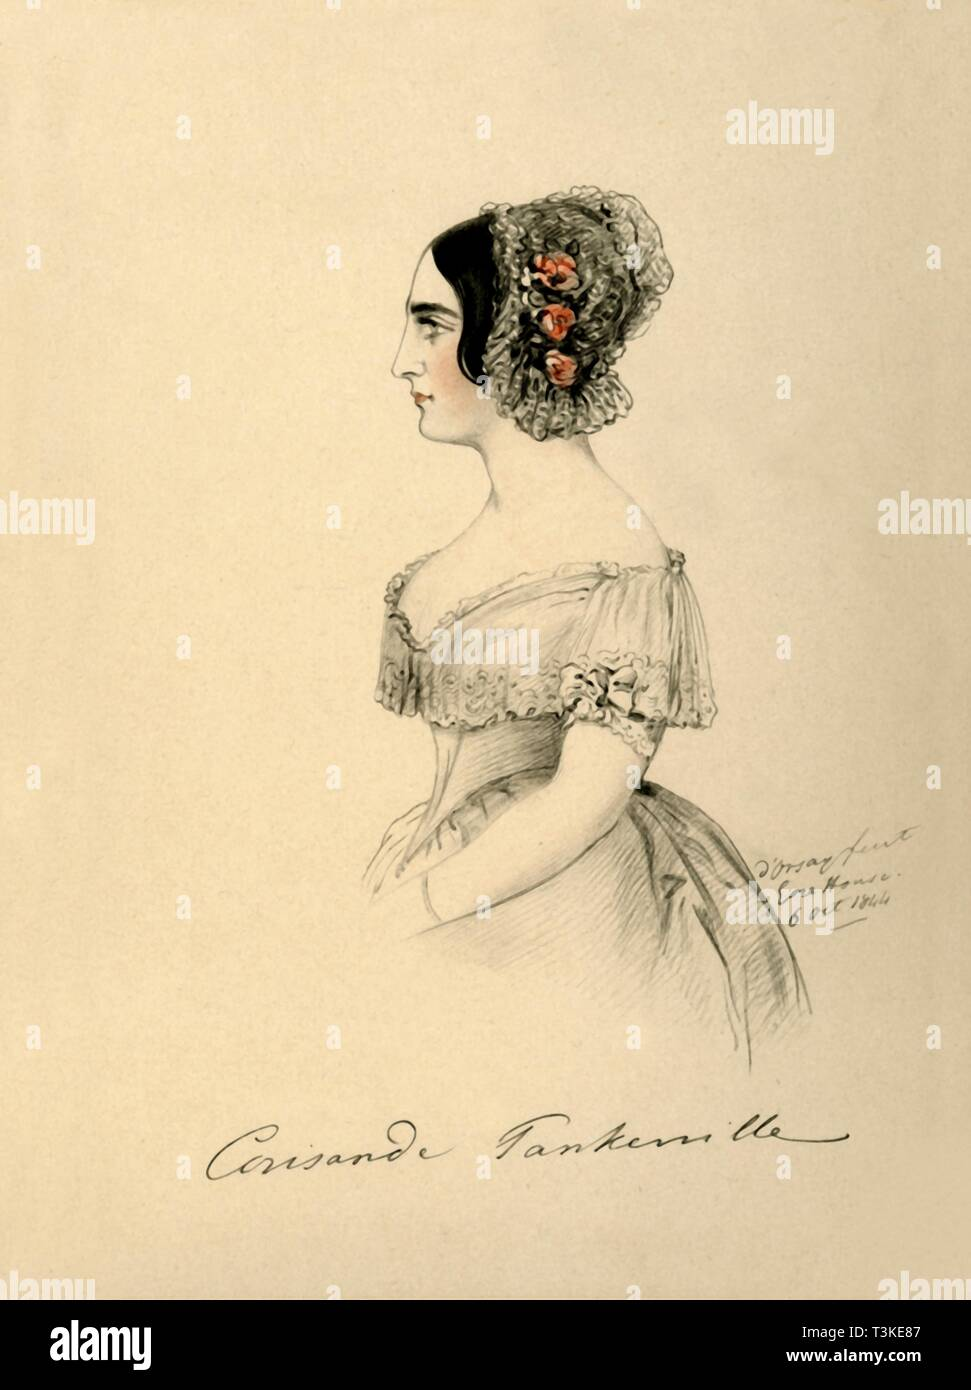 'Countess of Tankerville', 1844. Creator: Alfred d'Orsay. - Stock Image